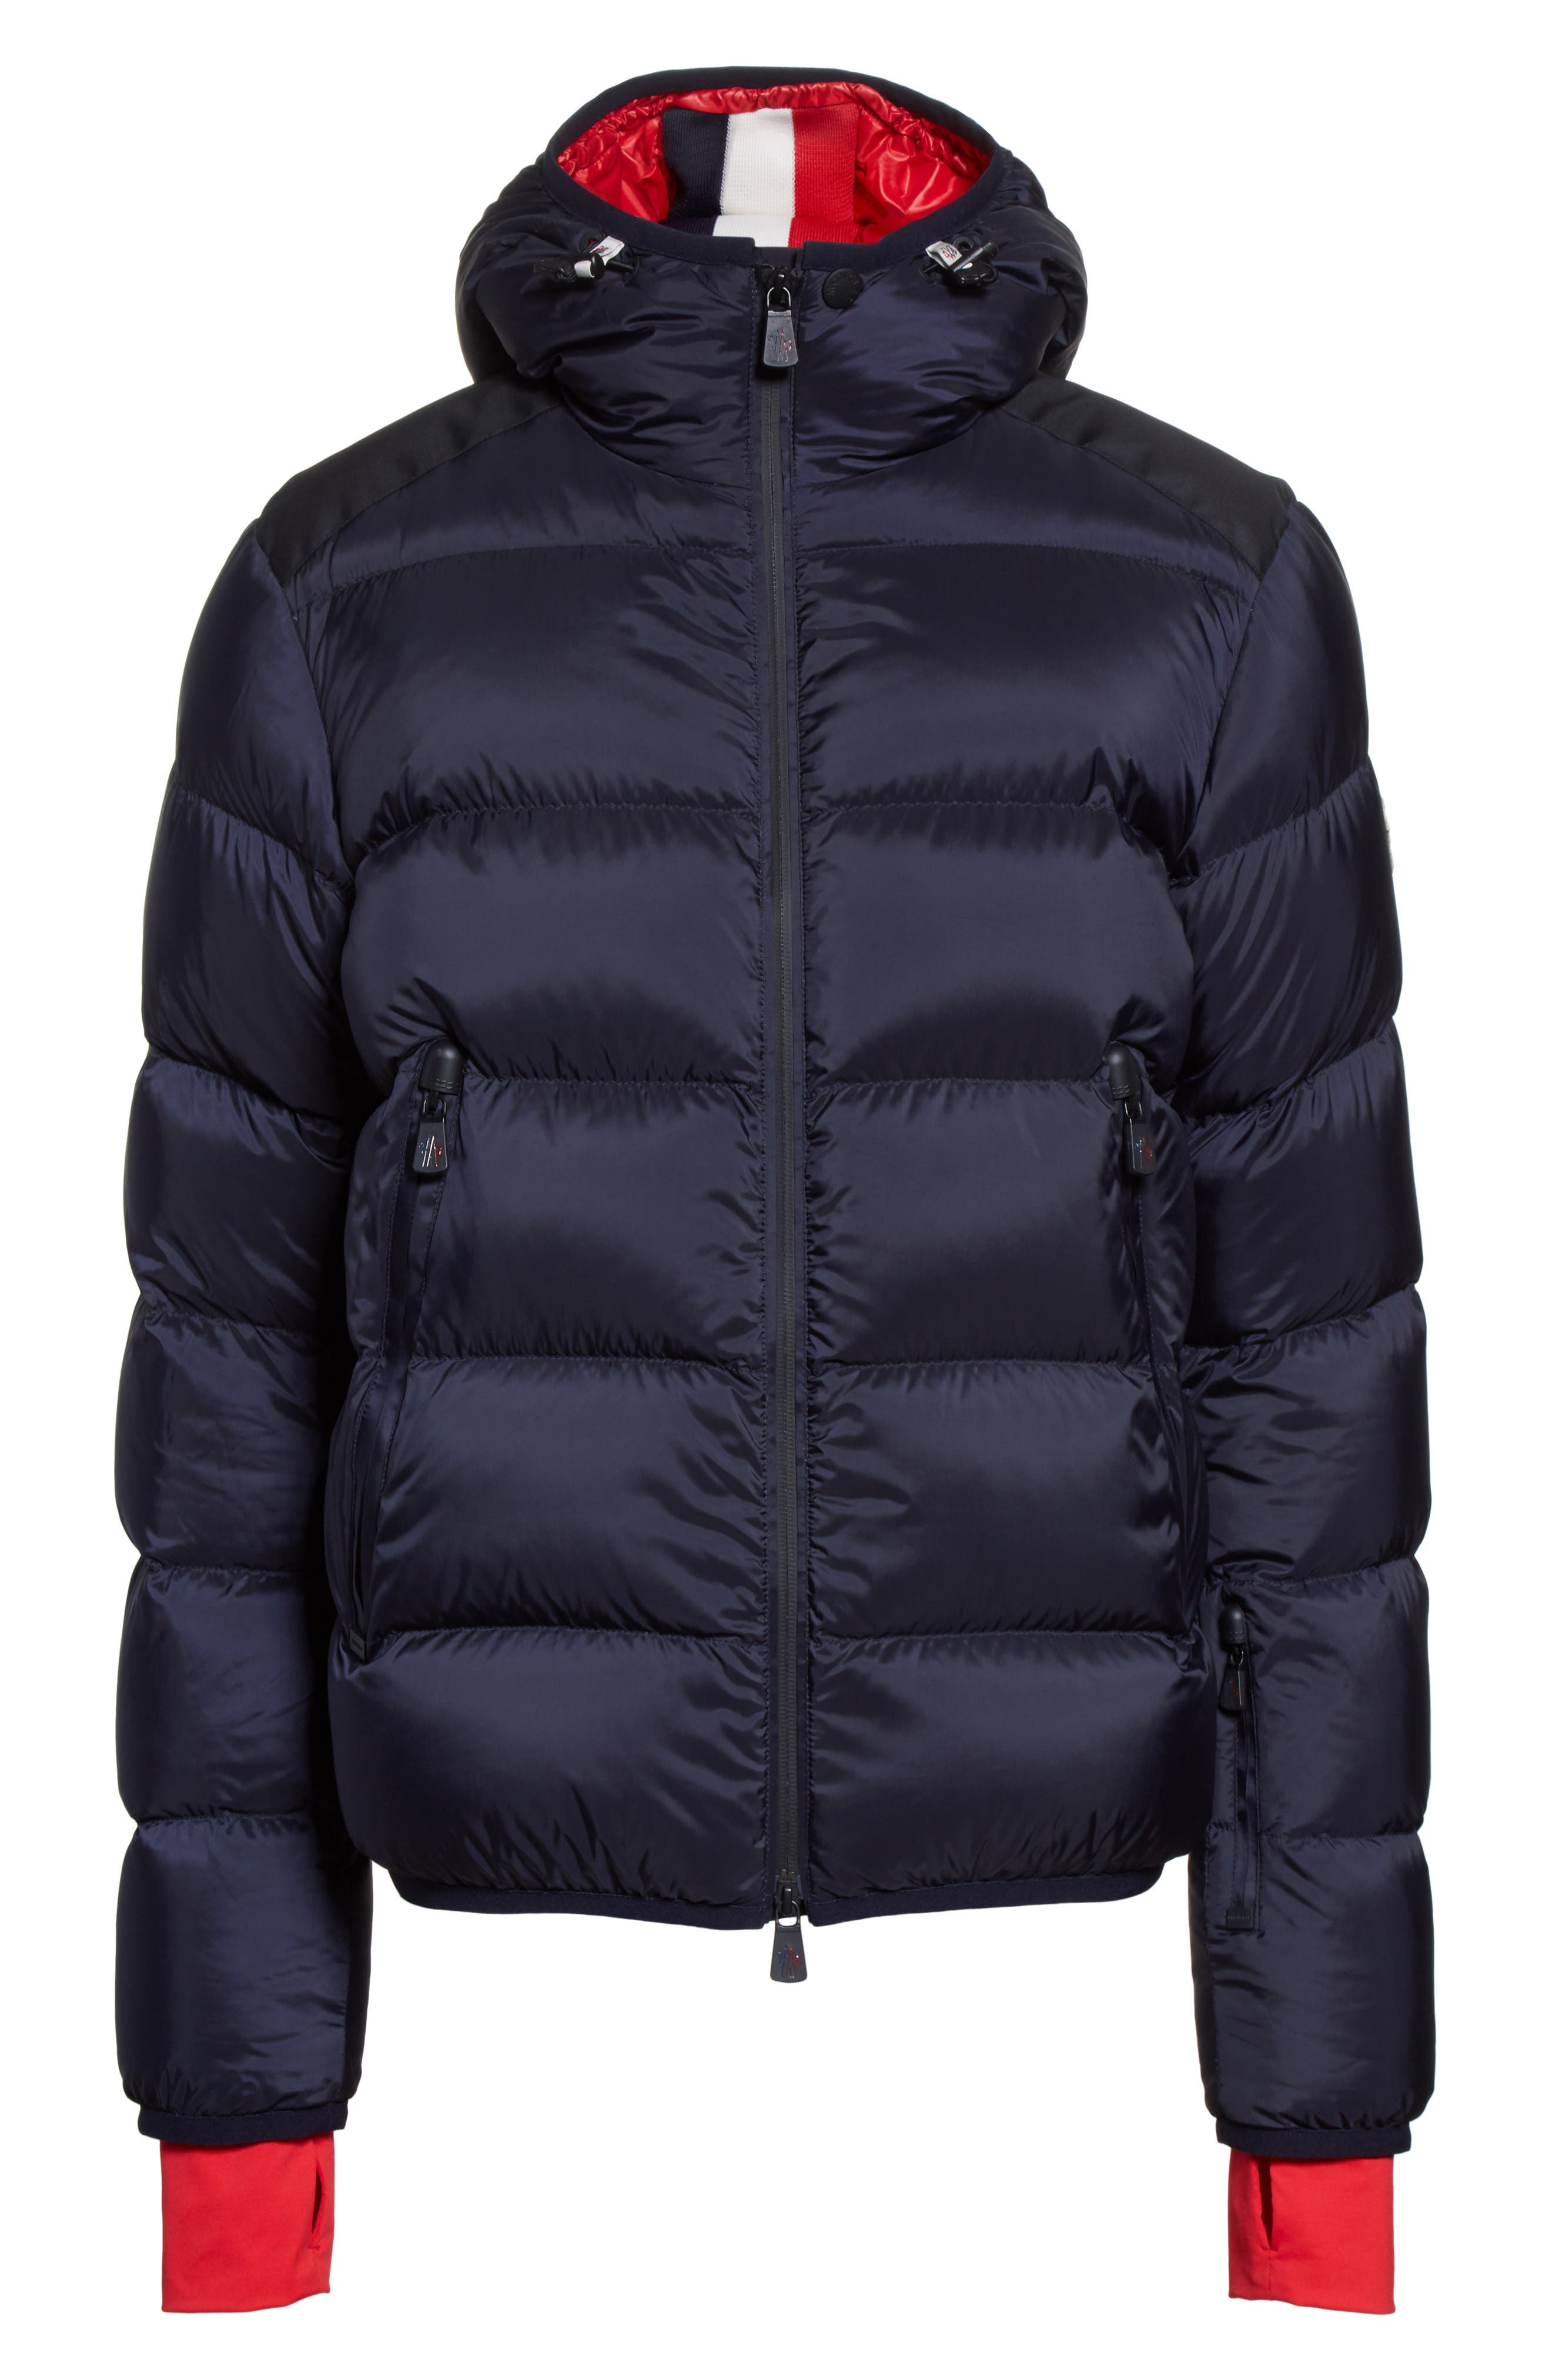 Grenoble Hintertux Hooded Down Jacket,                             Alternate thumbnail 6, color,                             Navy/ Red